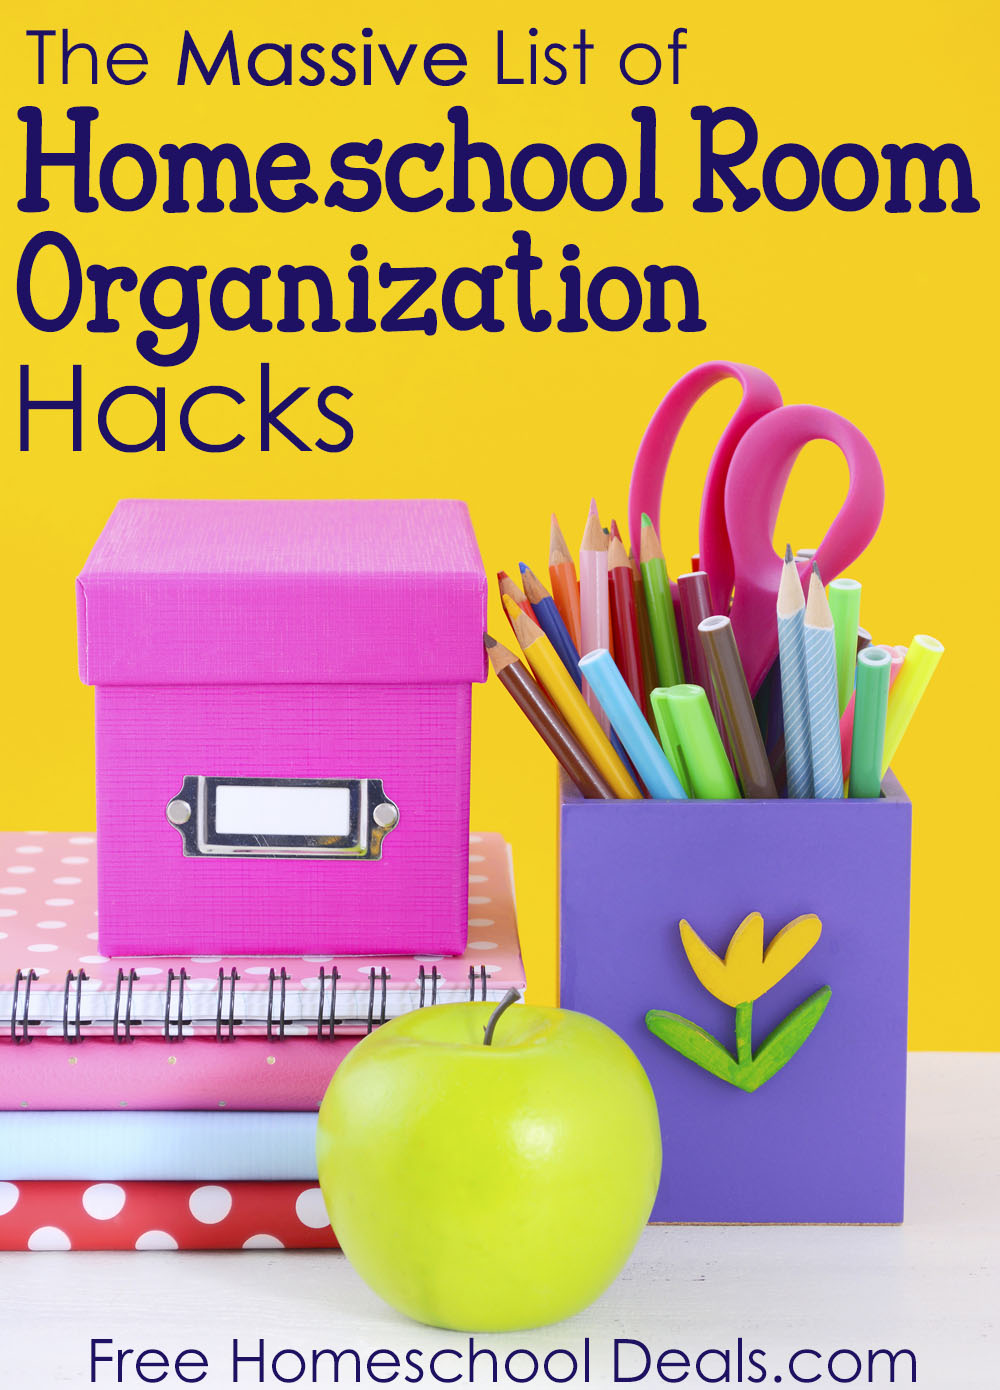 The Massive List of Homeschool Room Organization Hacks